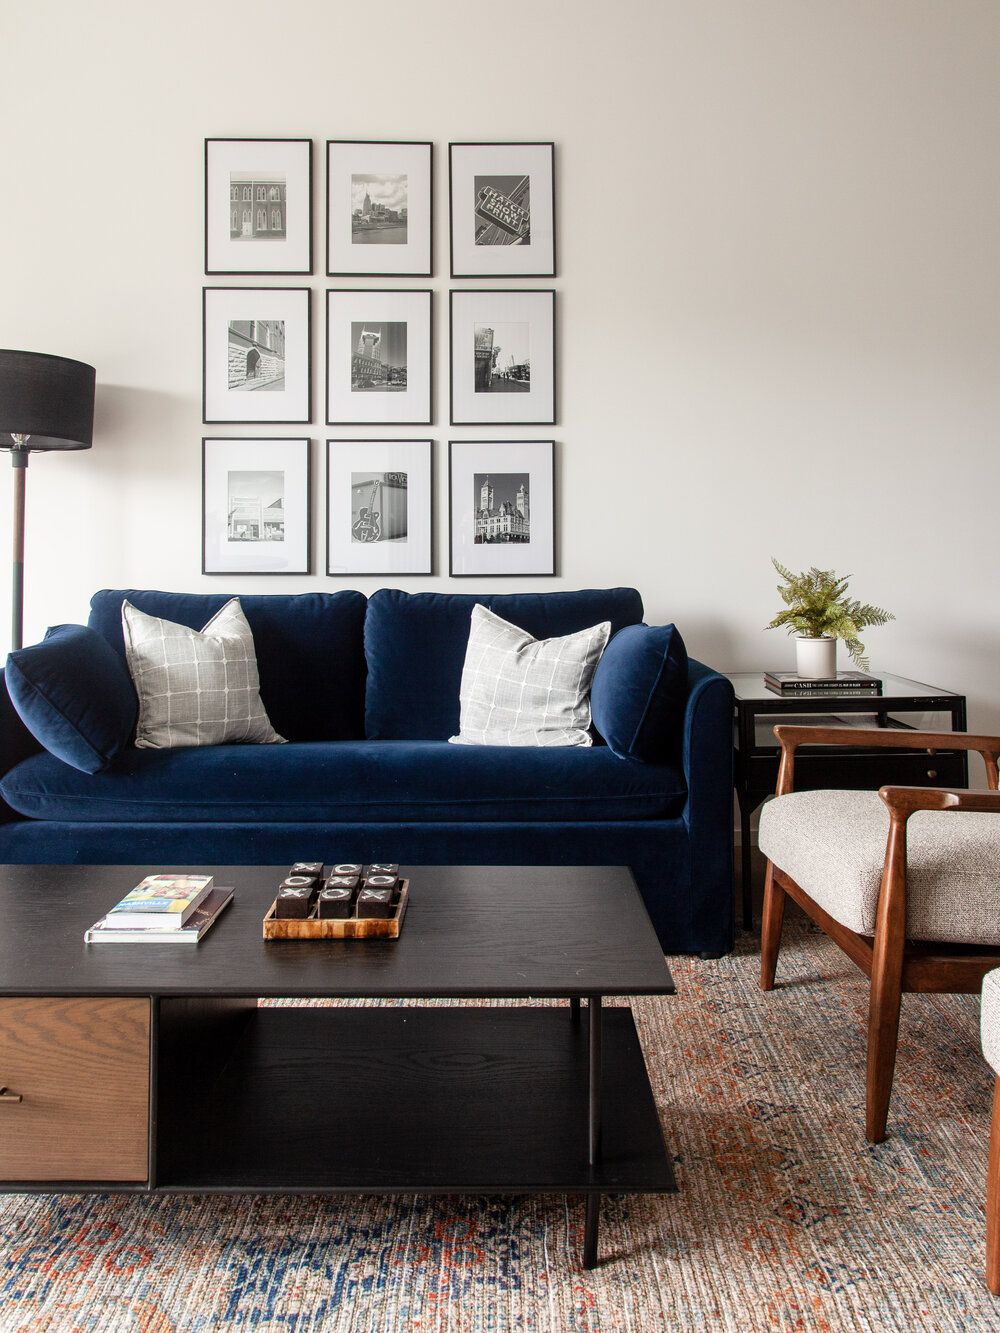 How To Hang A Gallery Wall Blue Sofas Living Room Blue Couch Living Room Blue Velvet Sofa Living Room